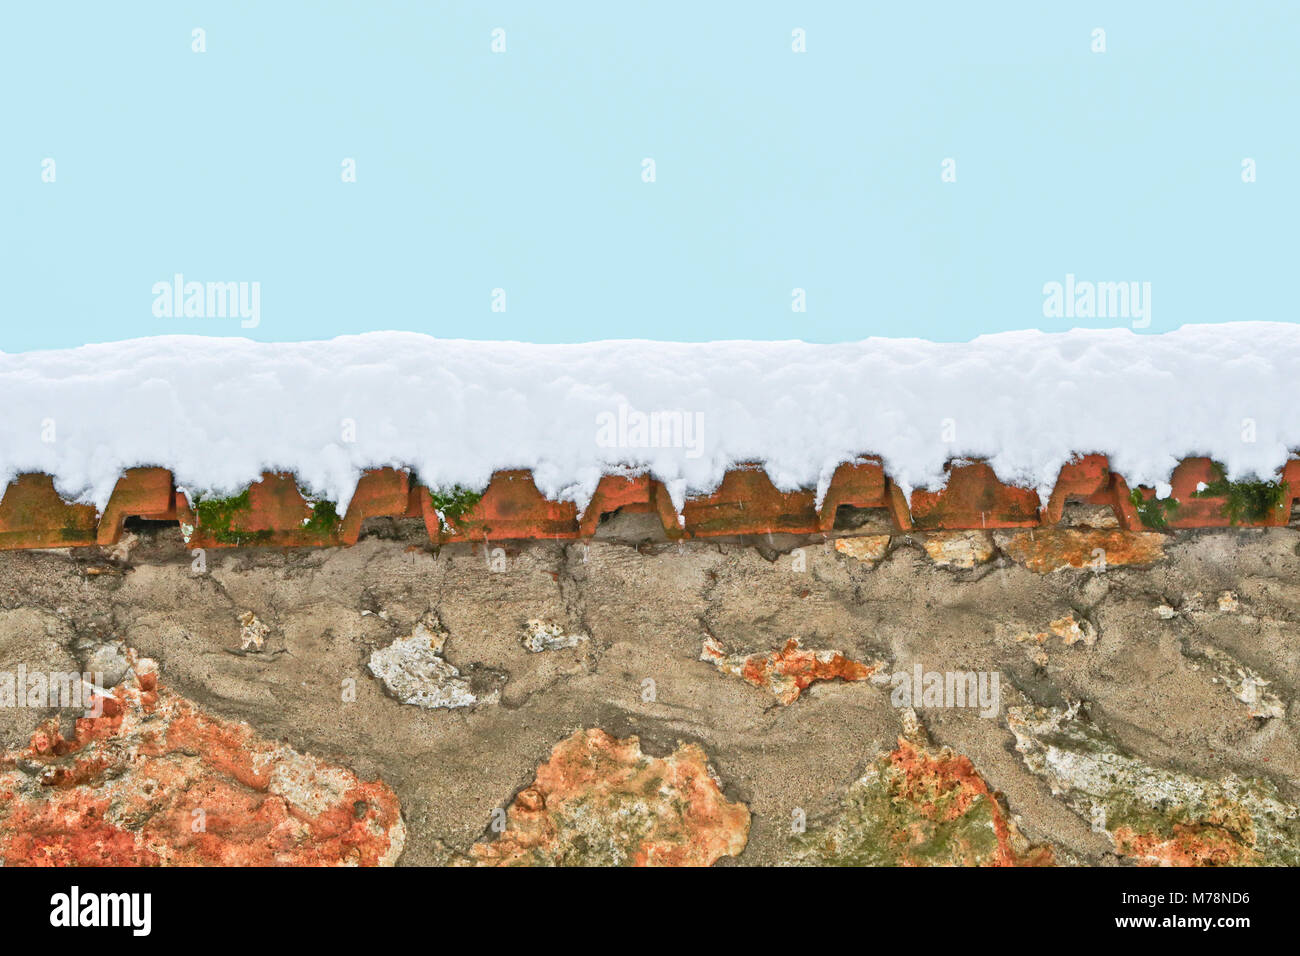 Wall with snow and blue sky - Stock Image